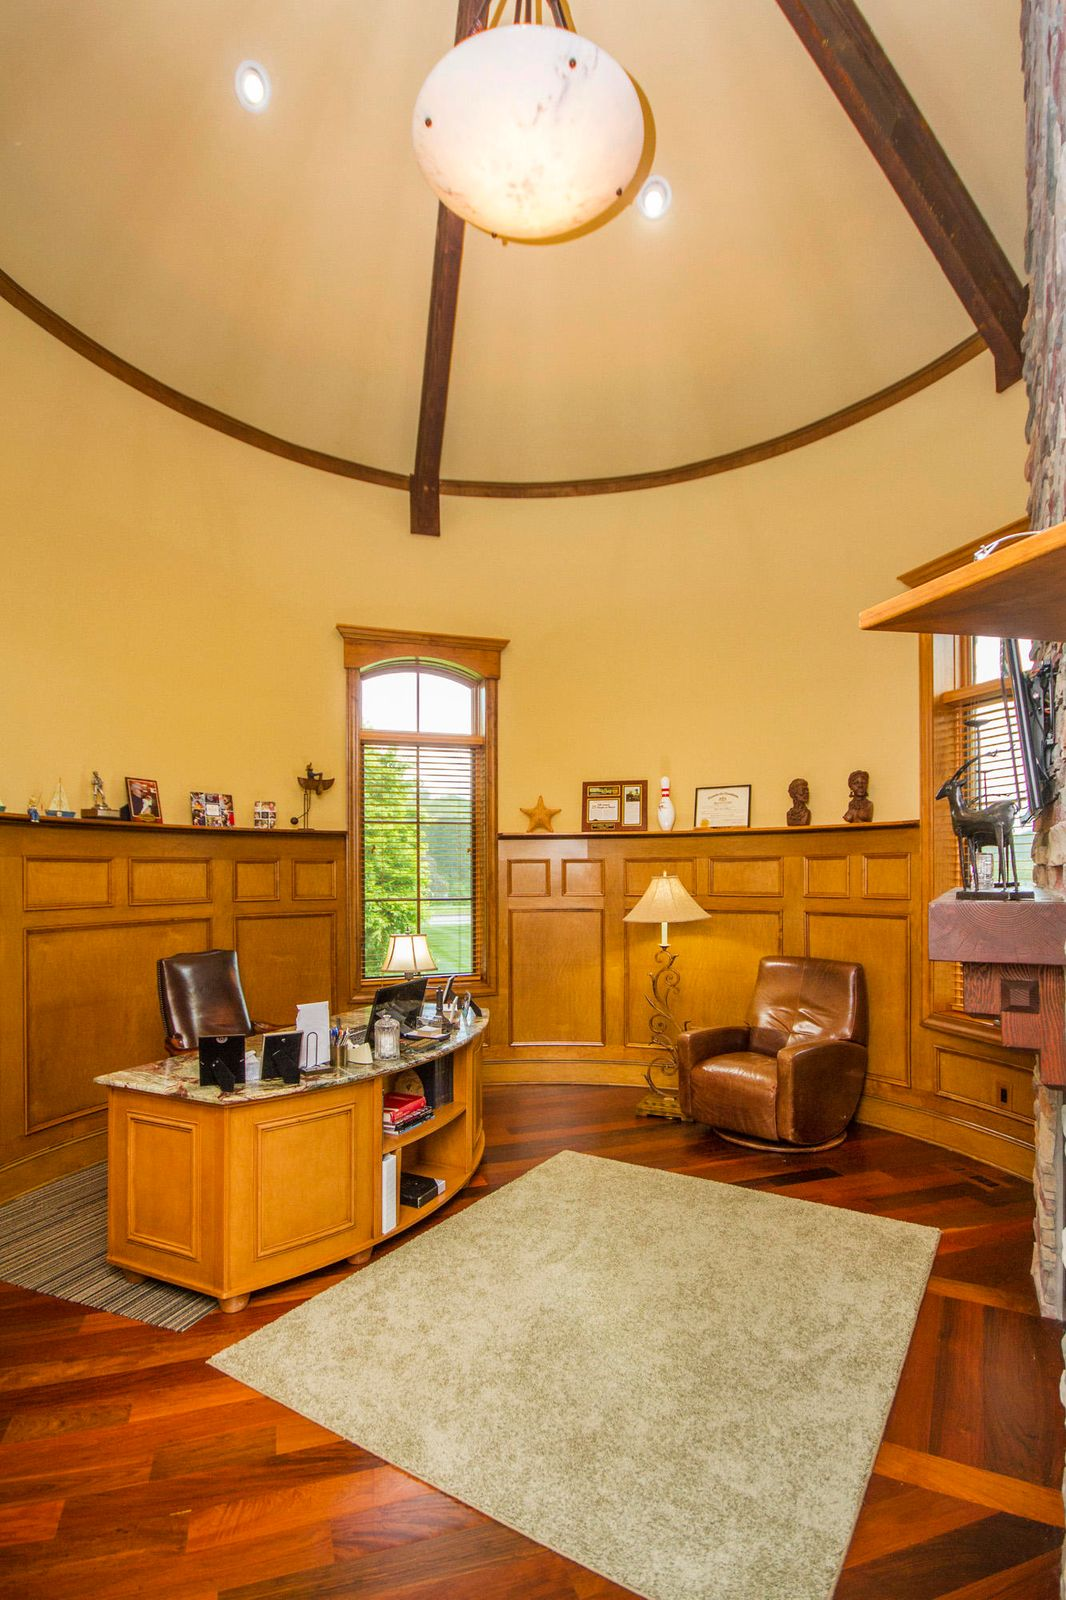 Your Oval Office w/20' Vaulted Ceiling!